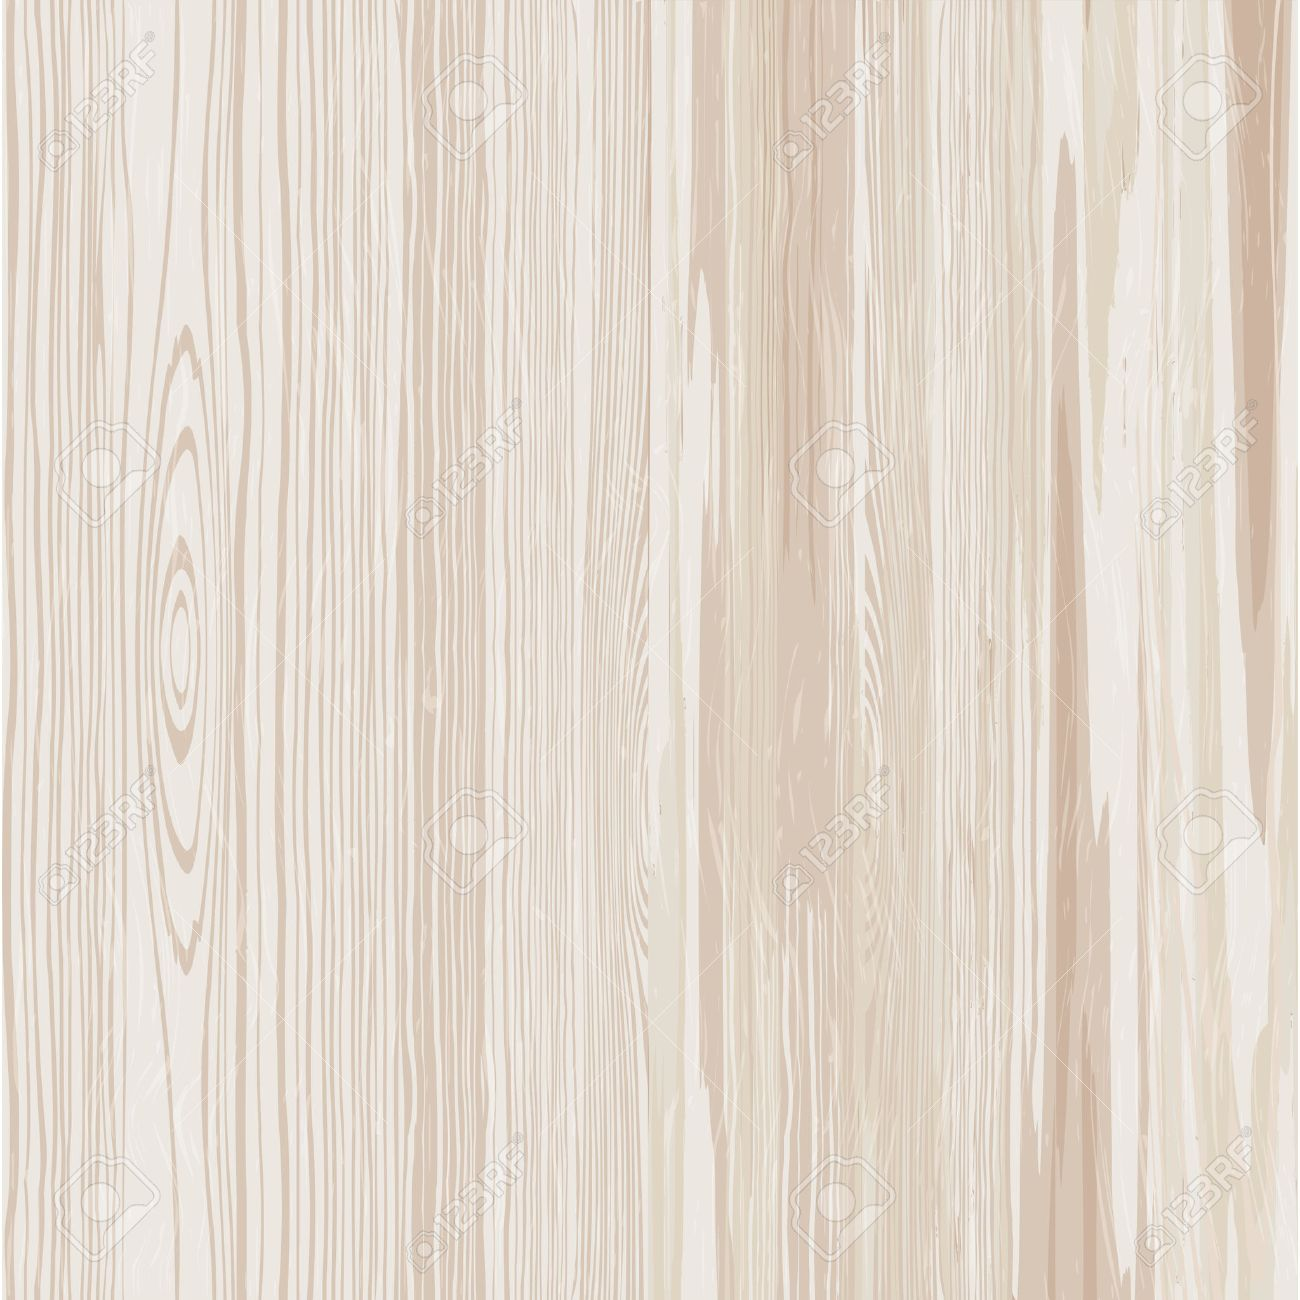 Light Wood Texture Vector Background Royalty Free Cliparts